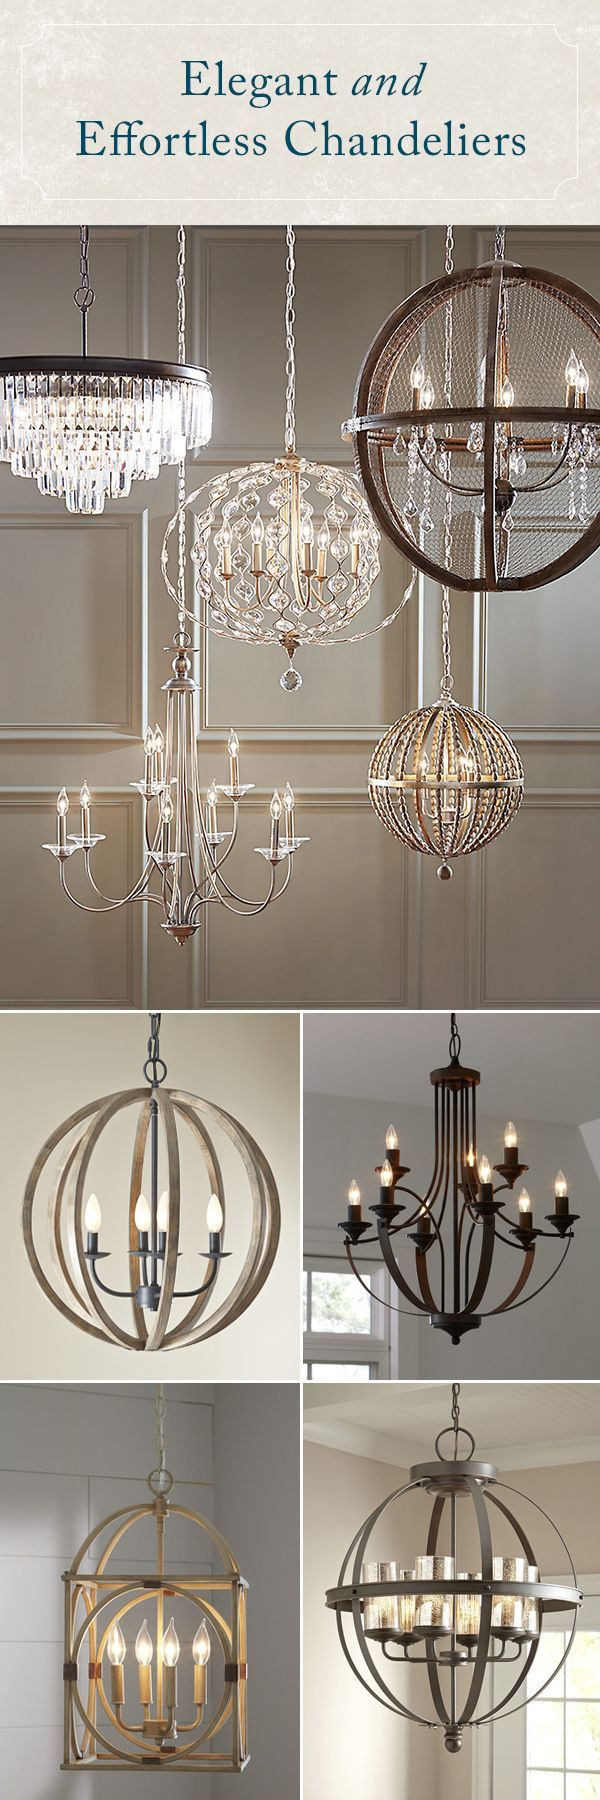 elegant dining room chandeliers | Shimmering, elegant, and bright, the right chandelier adds ...